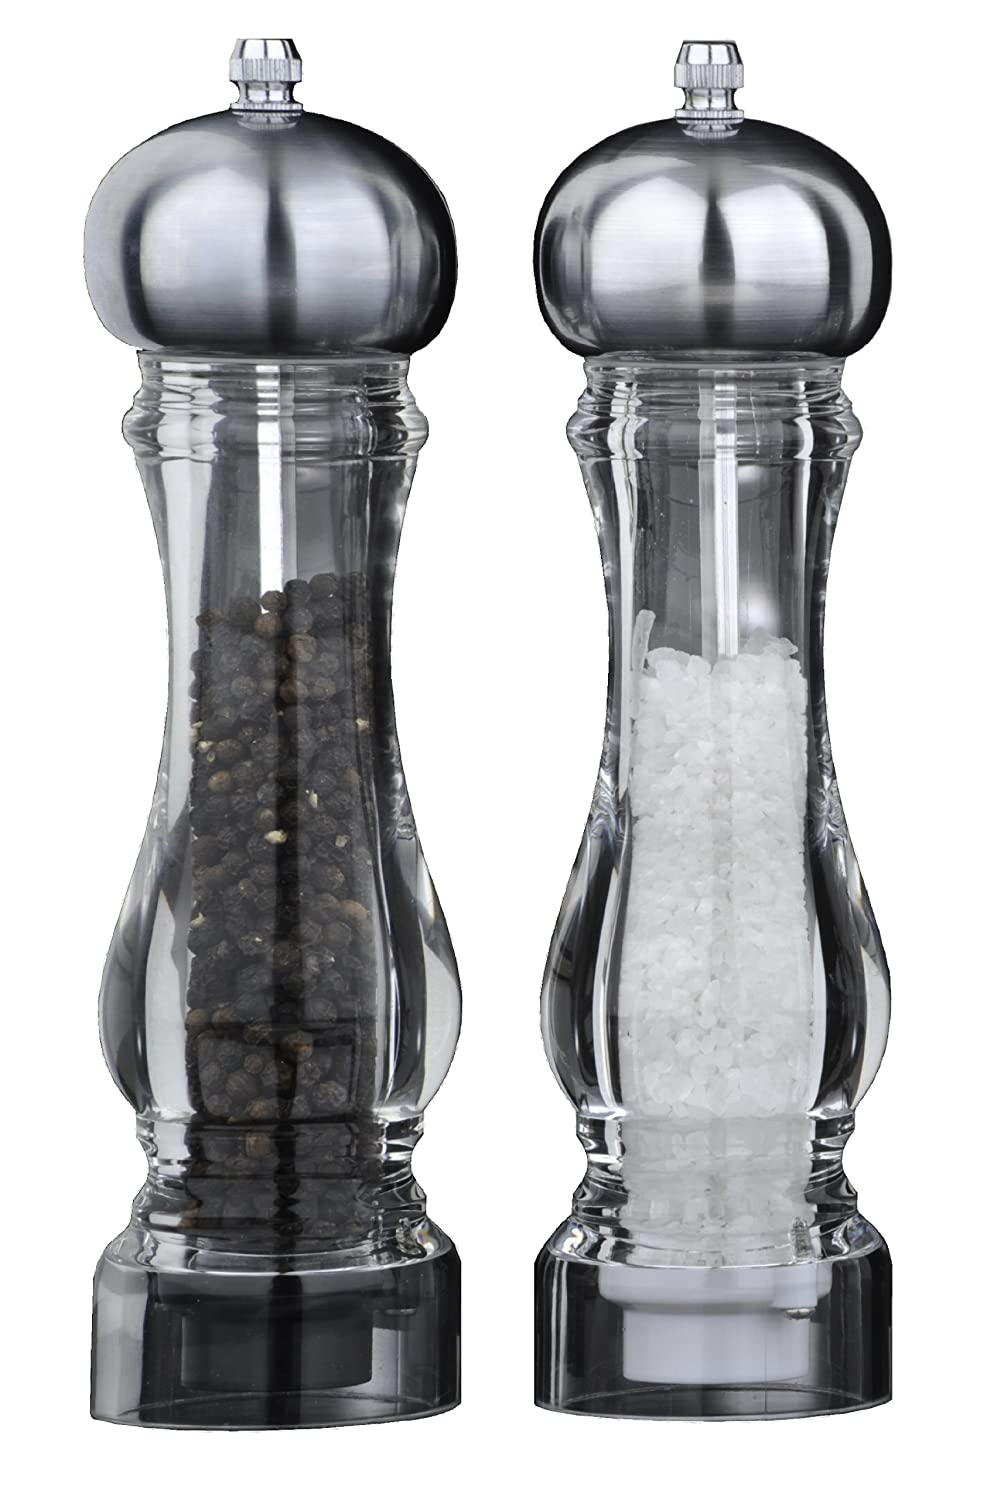 DMD King Salt and Pepper Mill Set with Chrome Plated Top DM1031106000SET